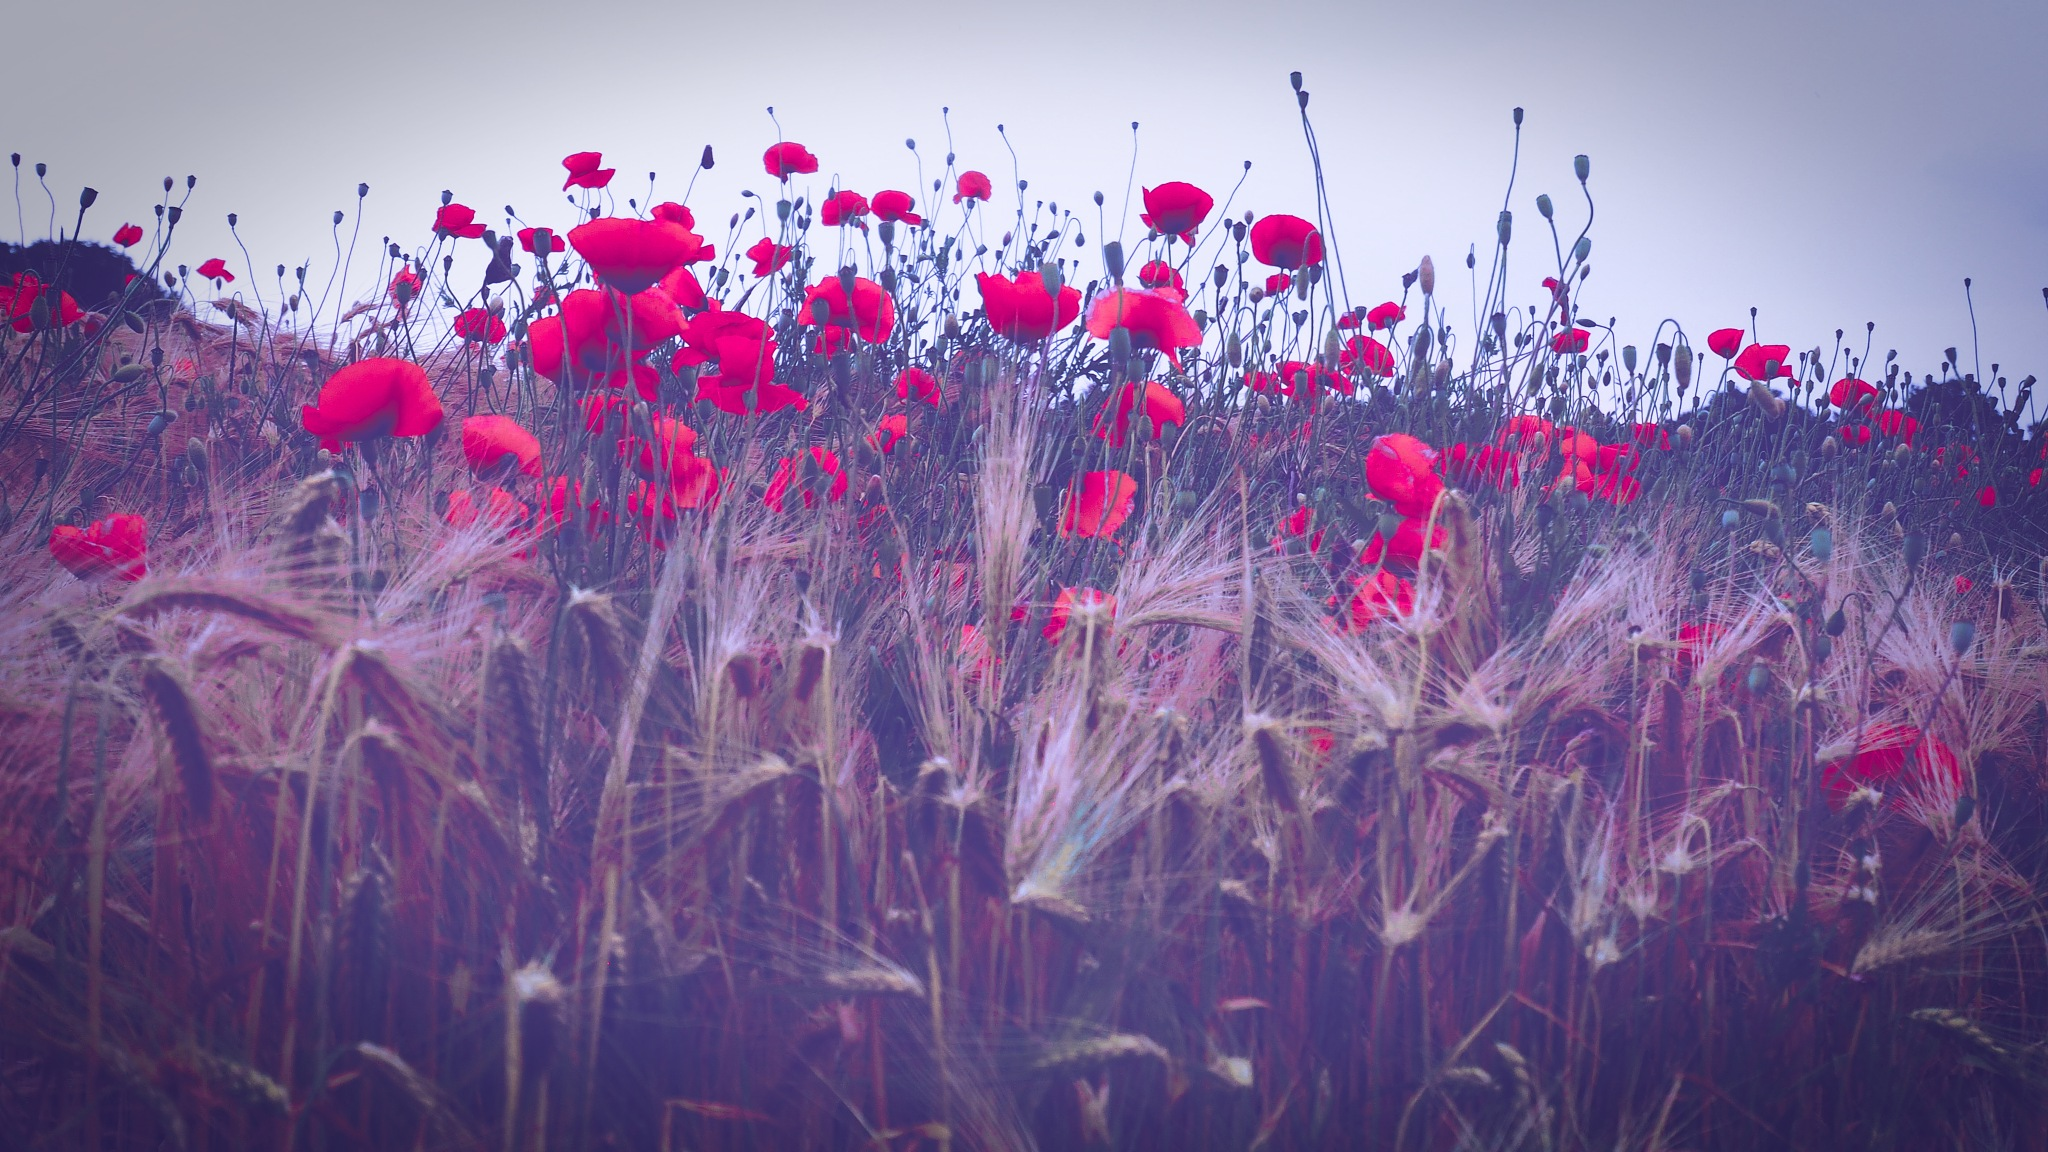 poppies meeting  by alain michel